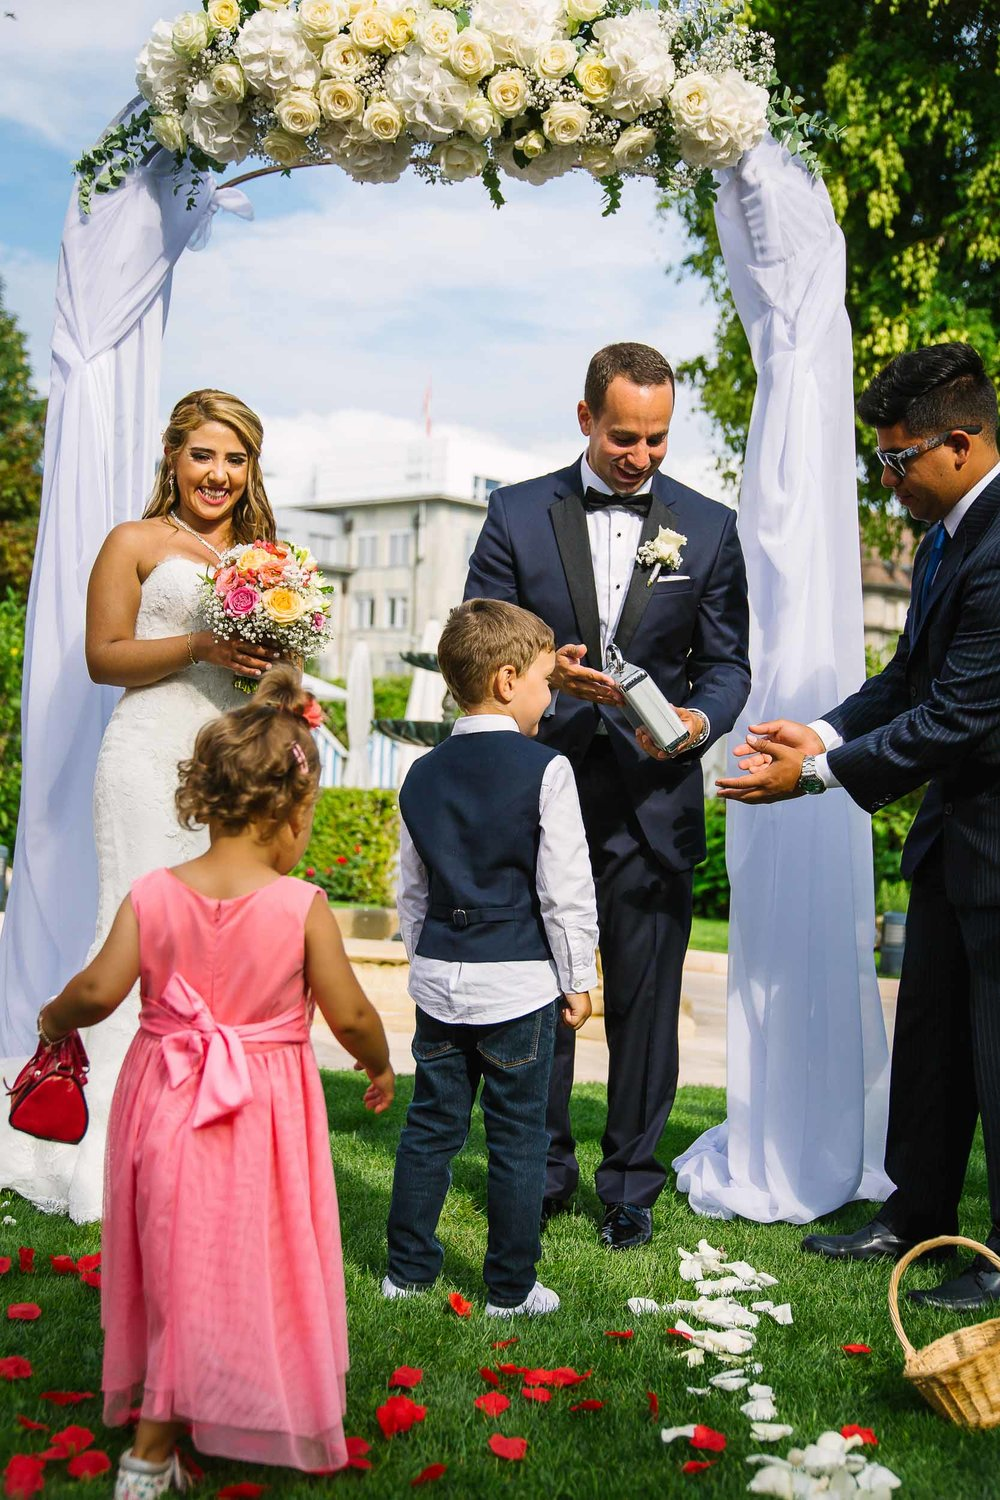 Enjoy every minute of your wedding ceremony without worrying about delays.